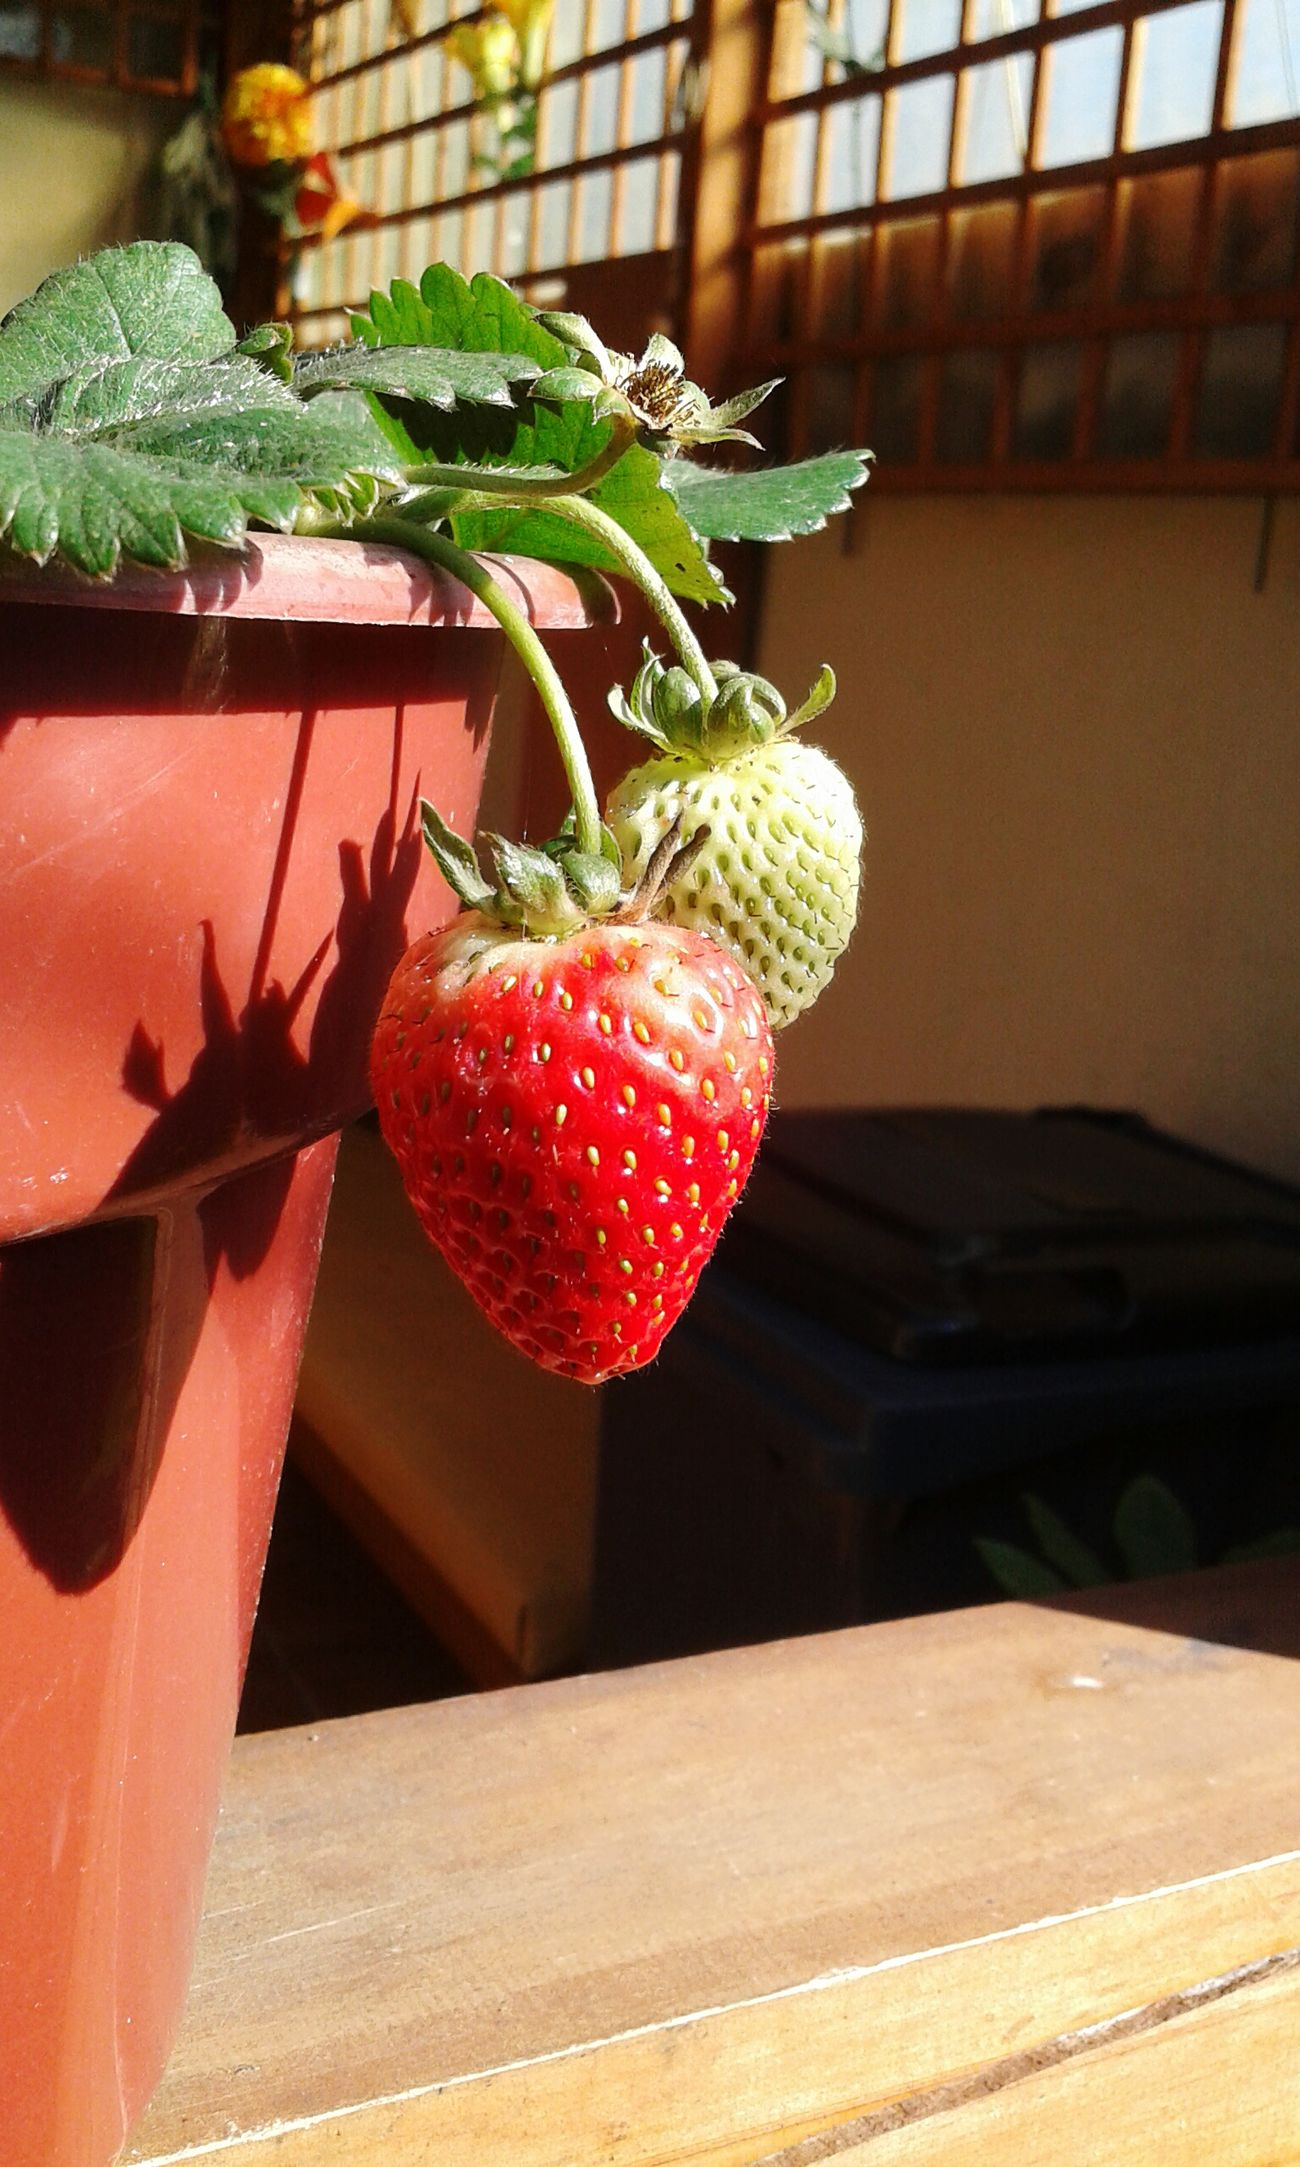 Strawberry Strawberrys Strawberry Plant Fruit EyeEm Gallery Eyeem Fruits EyeEm Fruit Collection